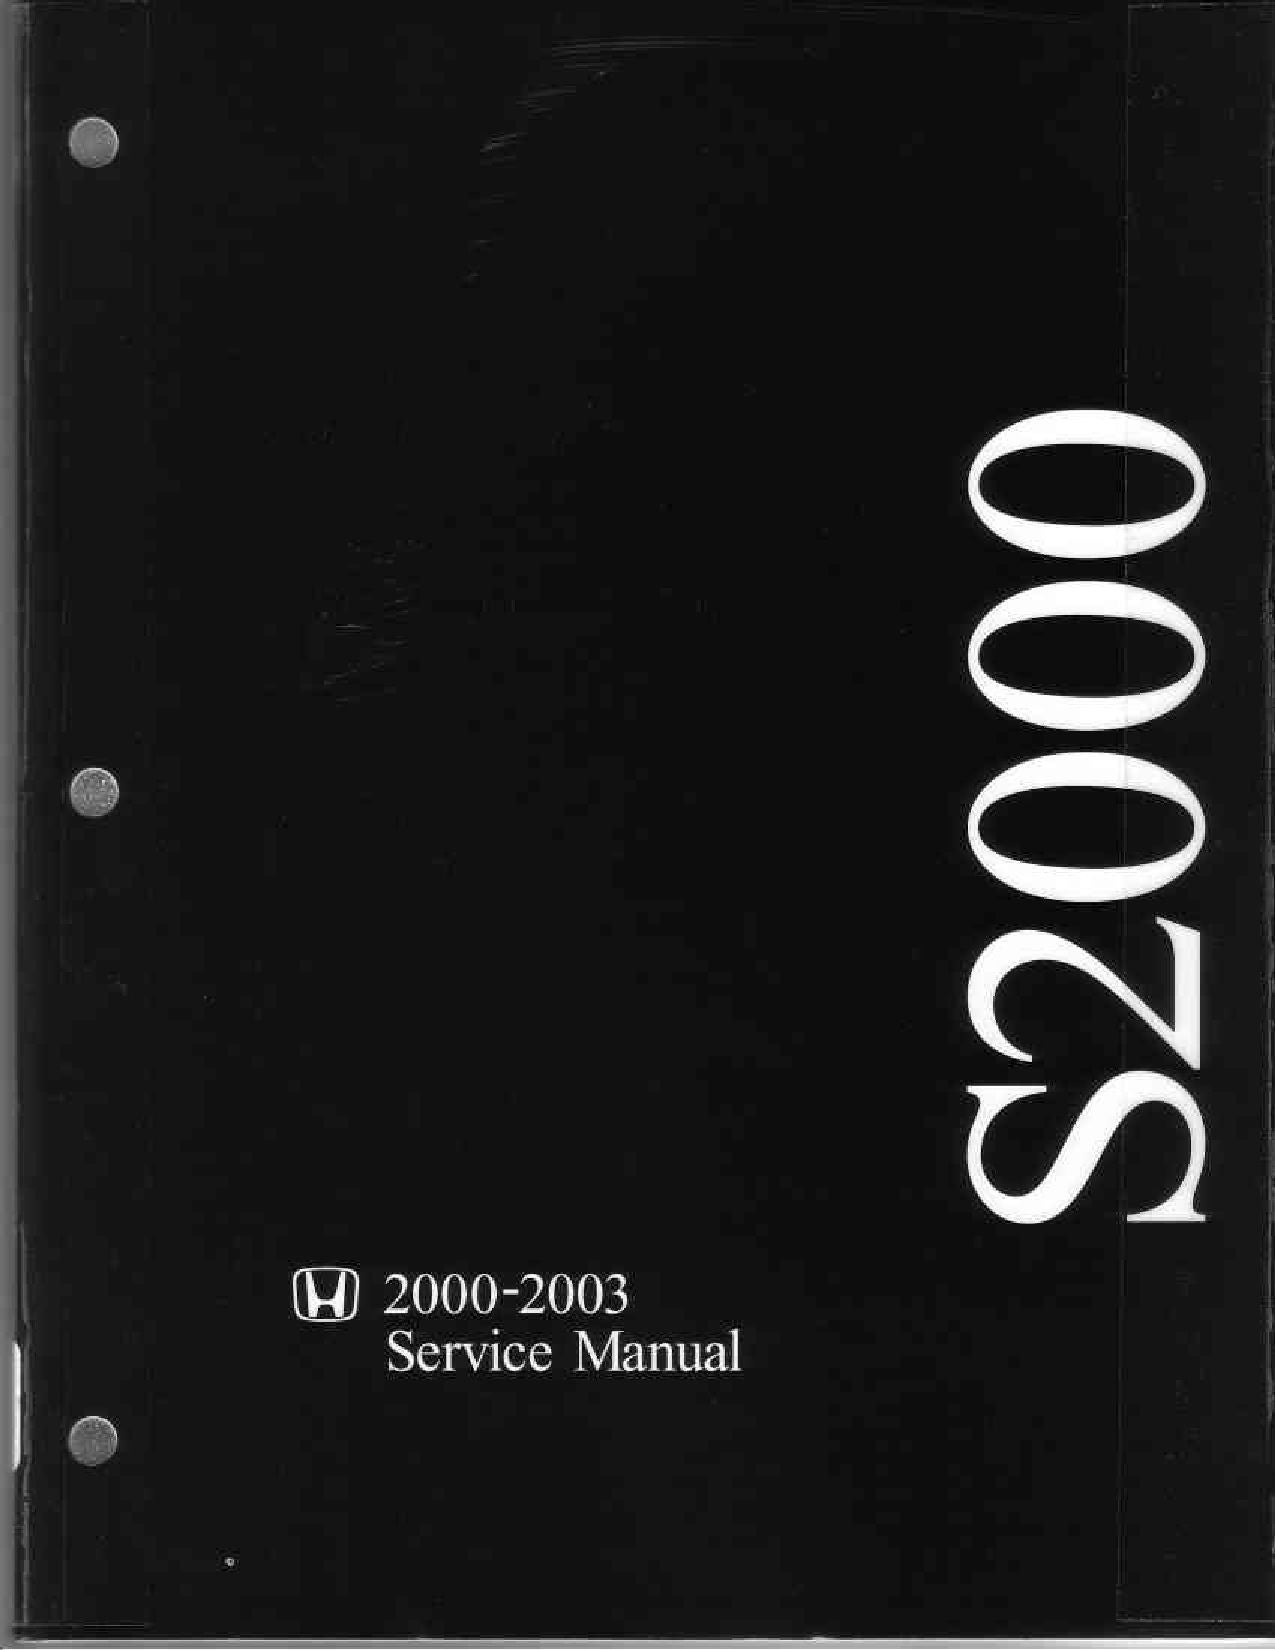 Honda S2000 00 03 Service Manual 01 By Rob Issuu Fuse Box